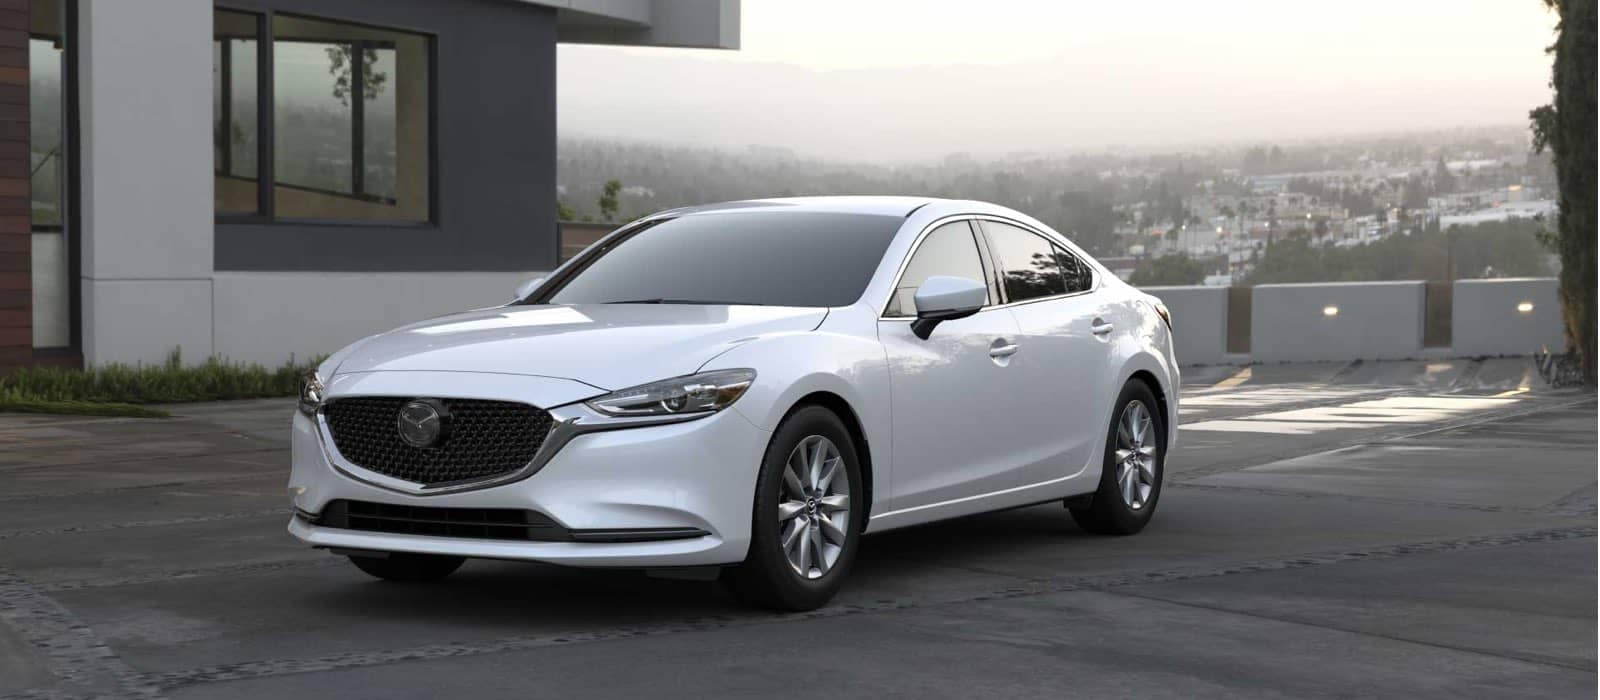 2021 Mazda6 parked at house